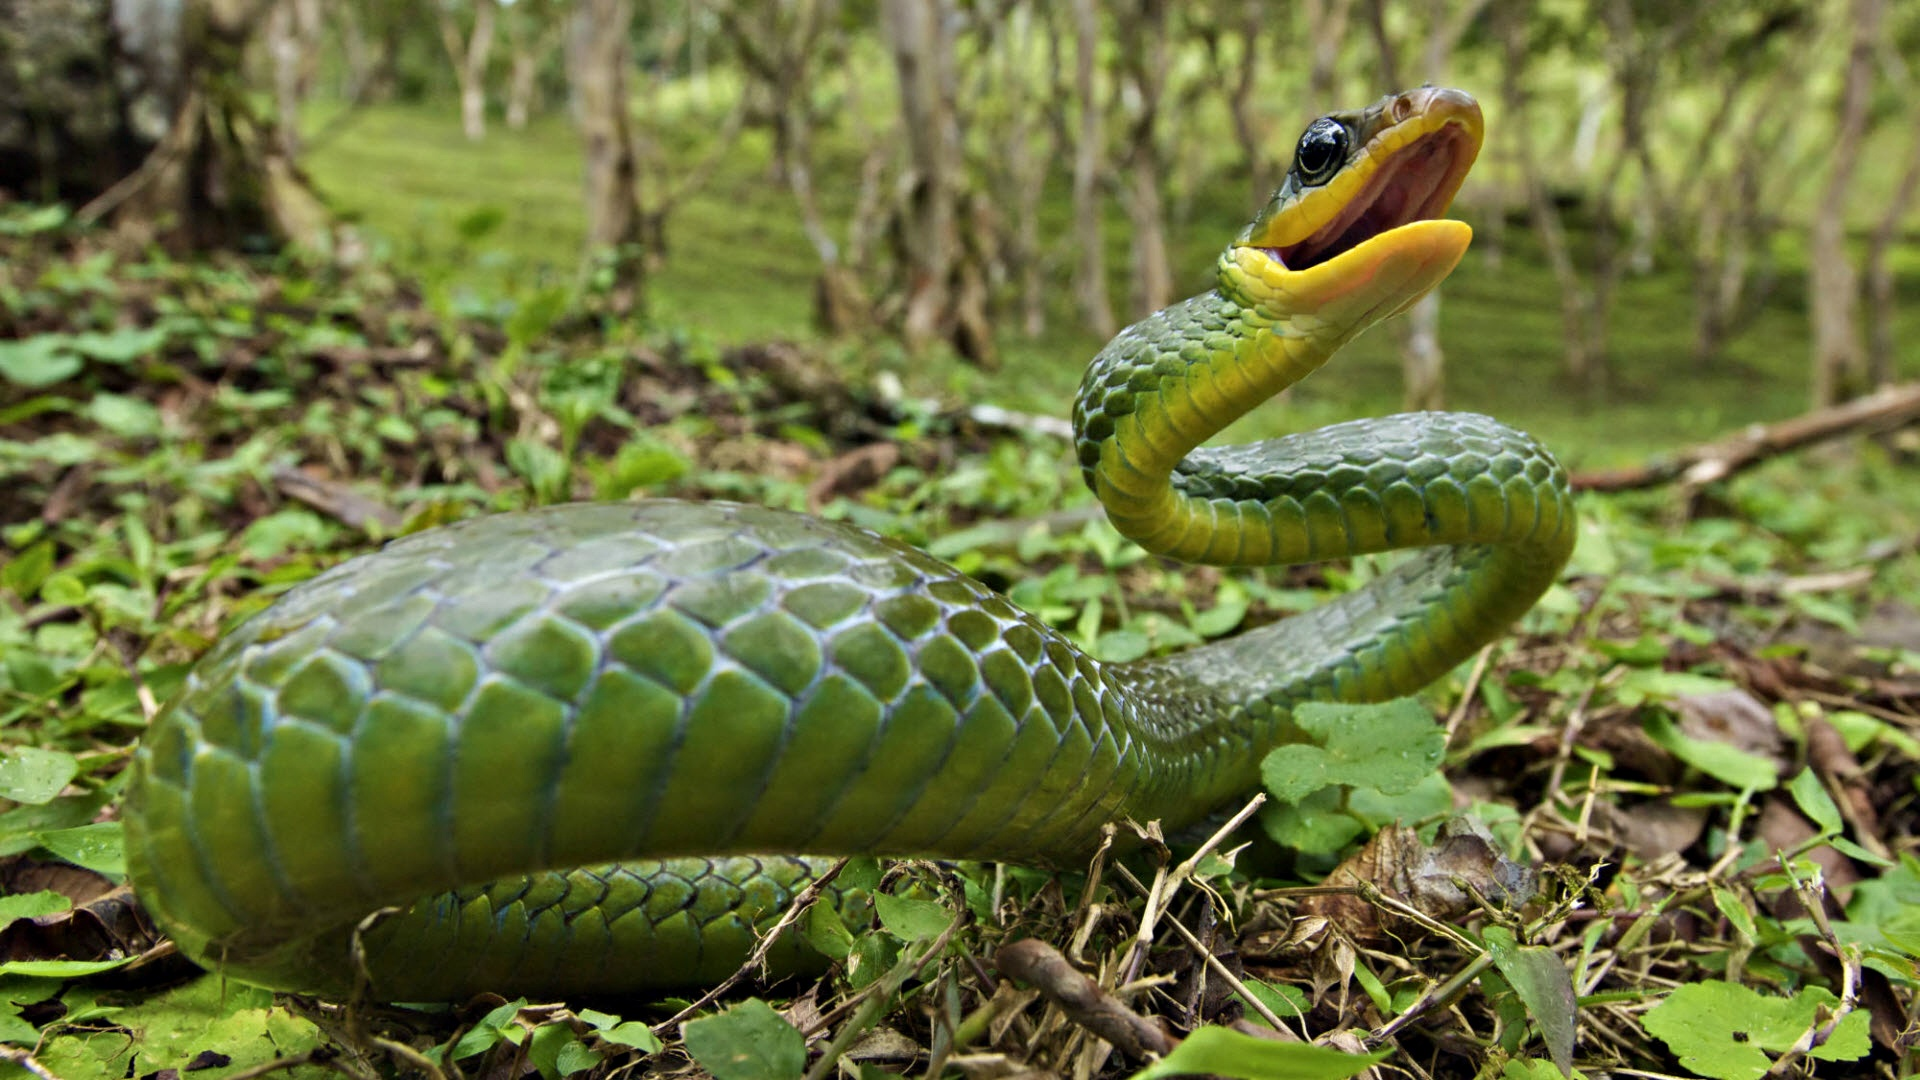 Green Snake | 1920 x 1080 | Download | Close